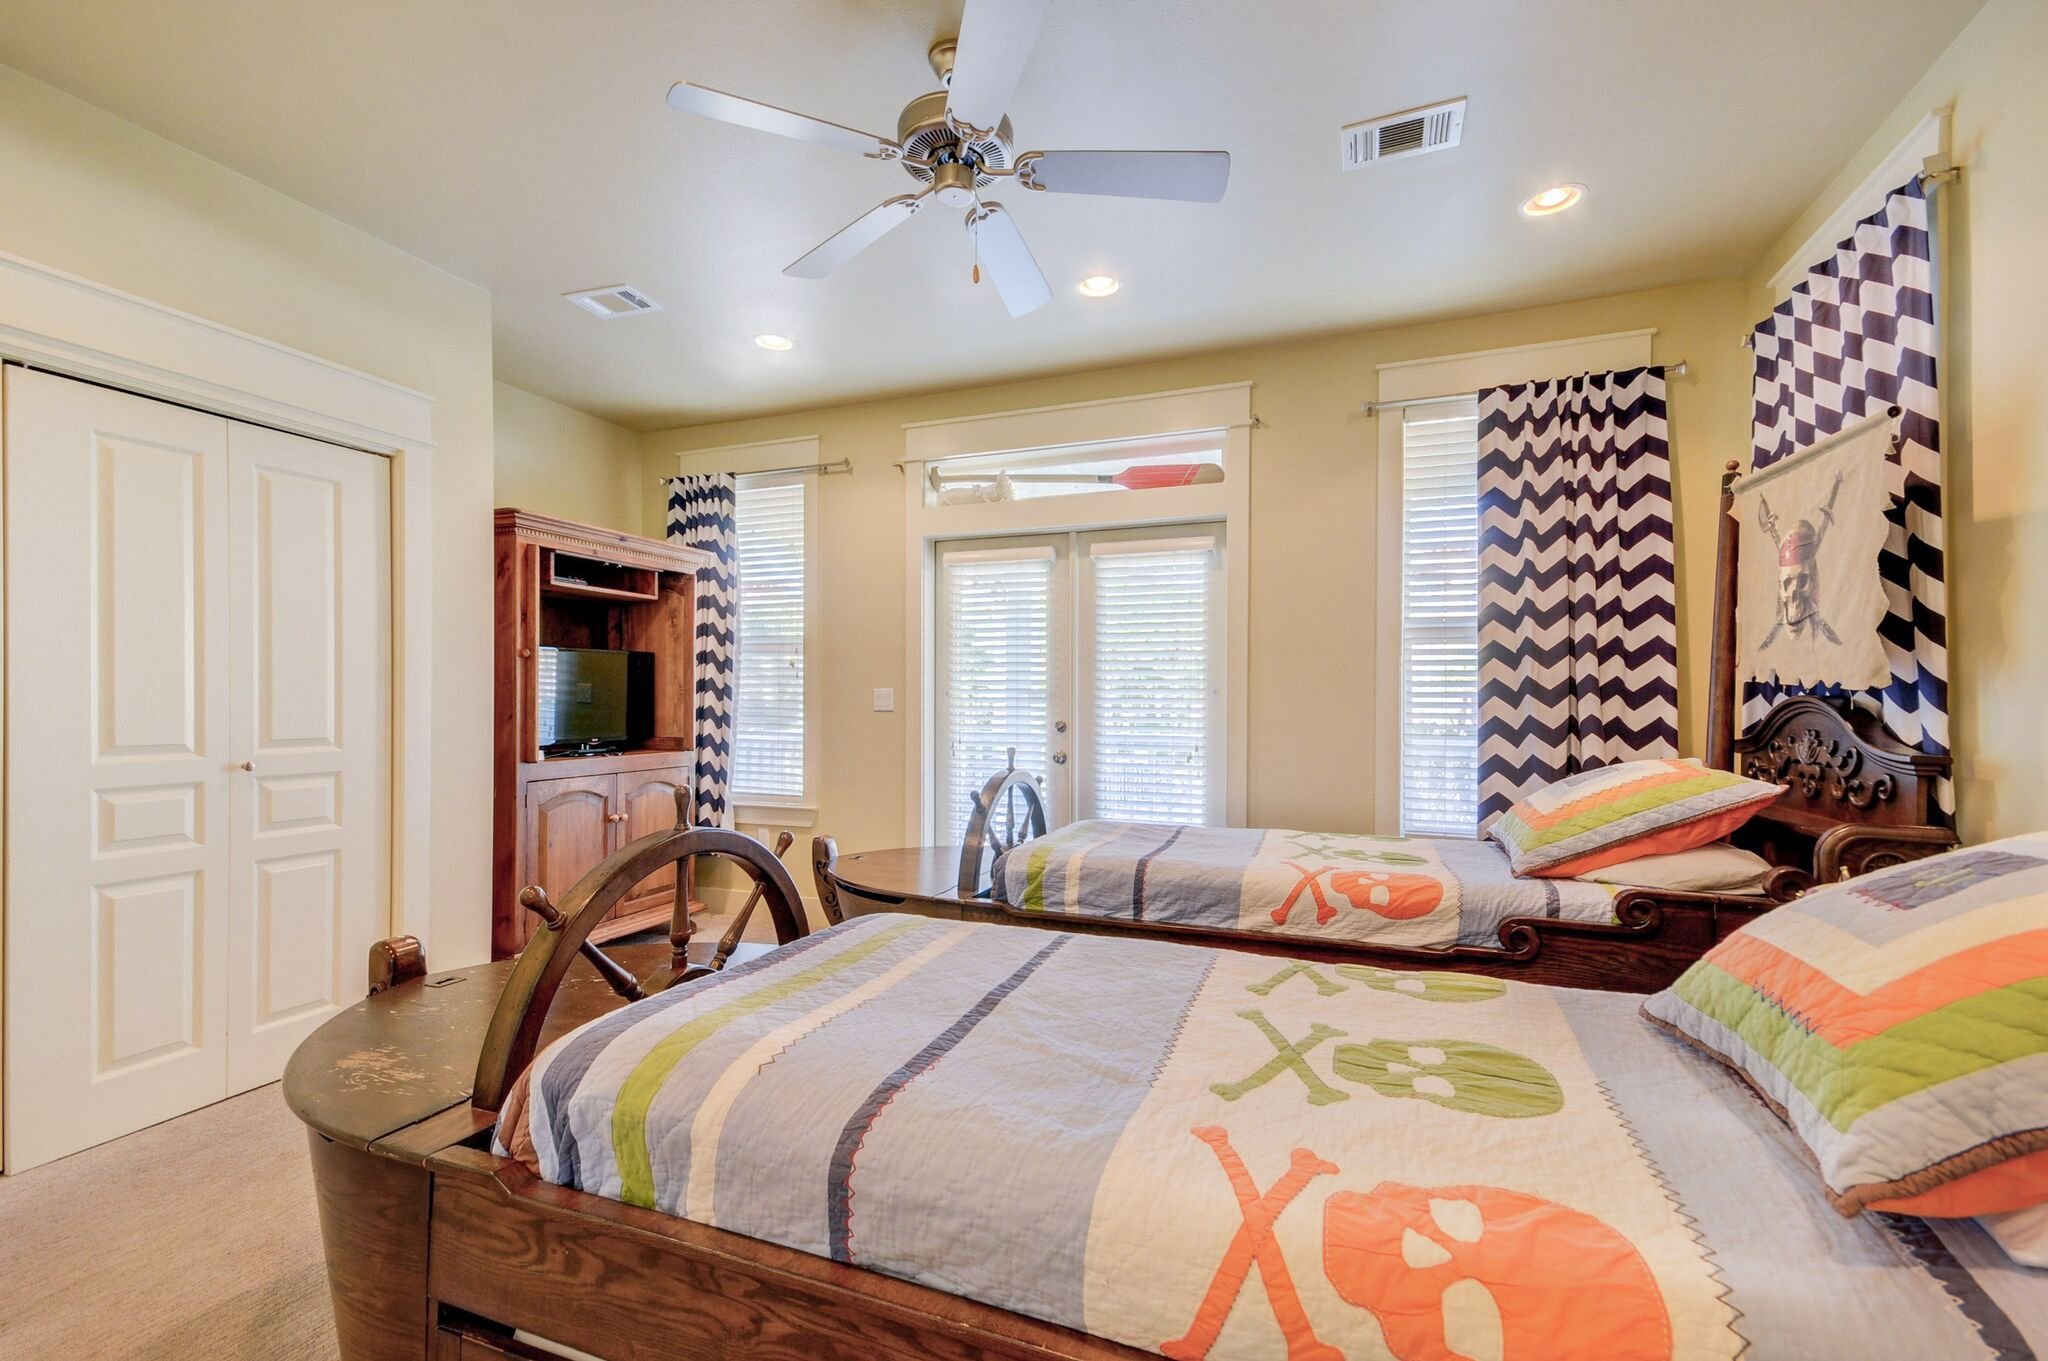 Private Room is a spacious bright bedroom